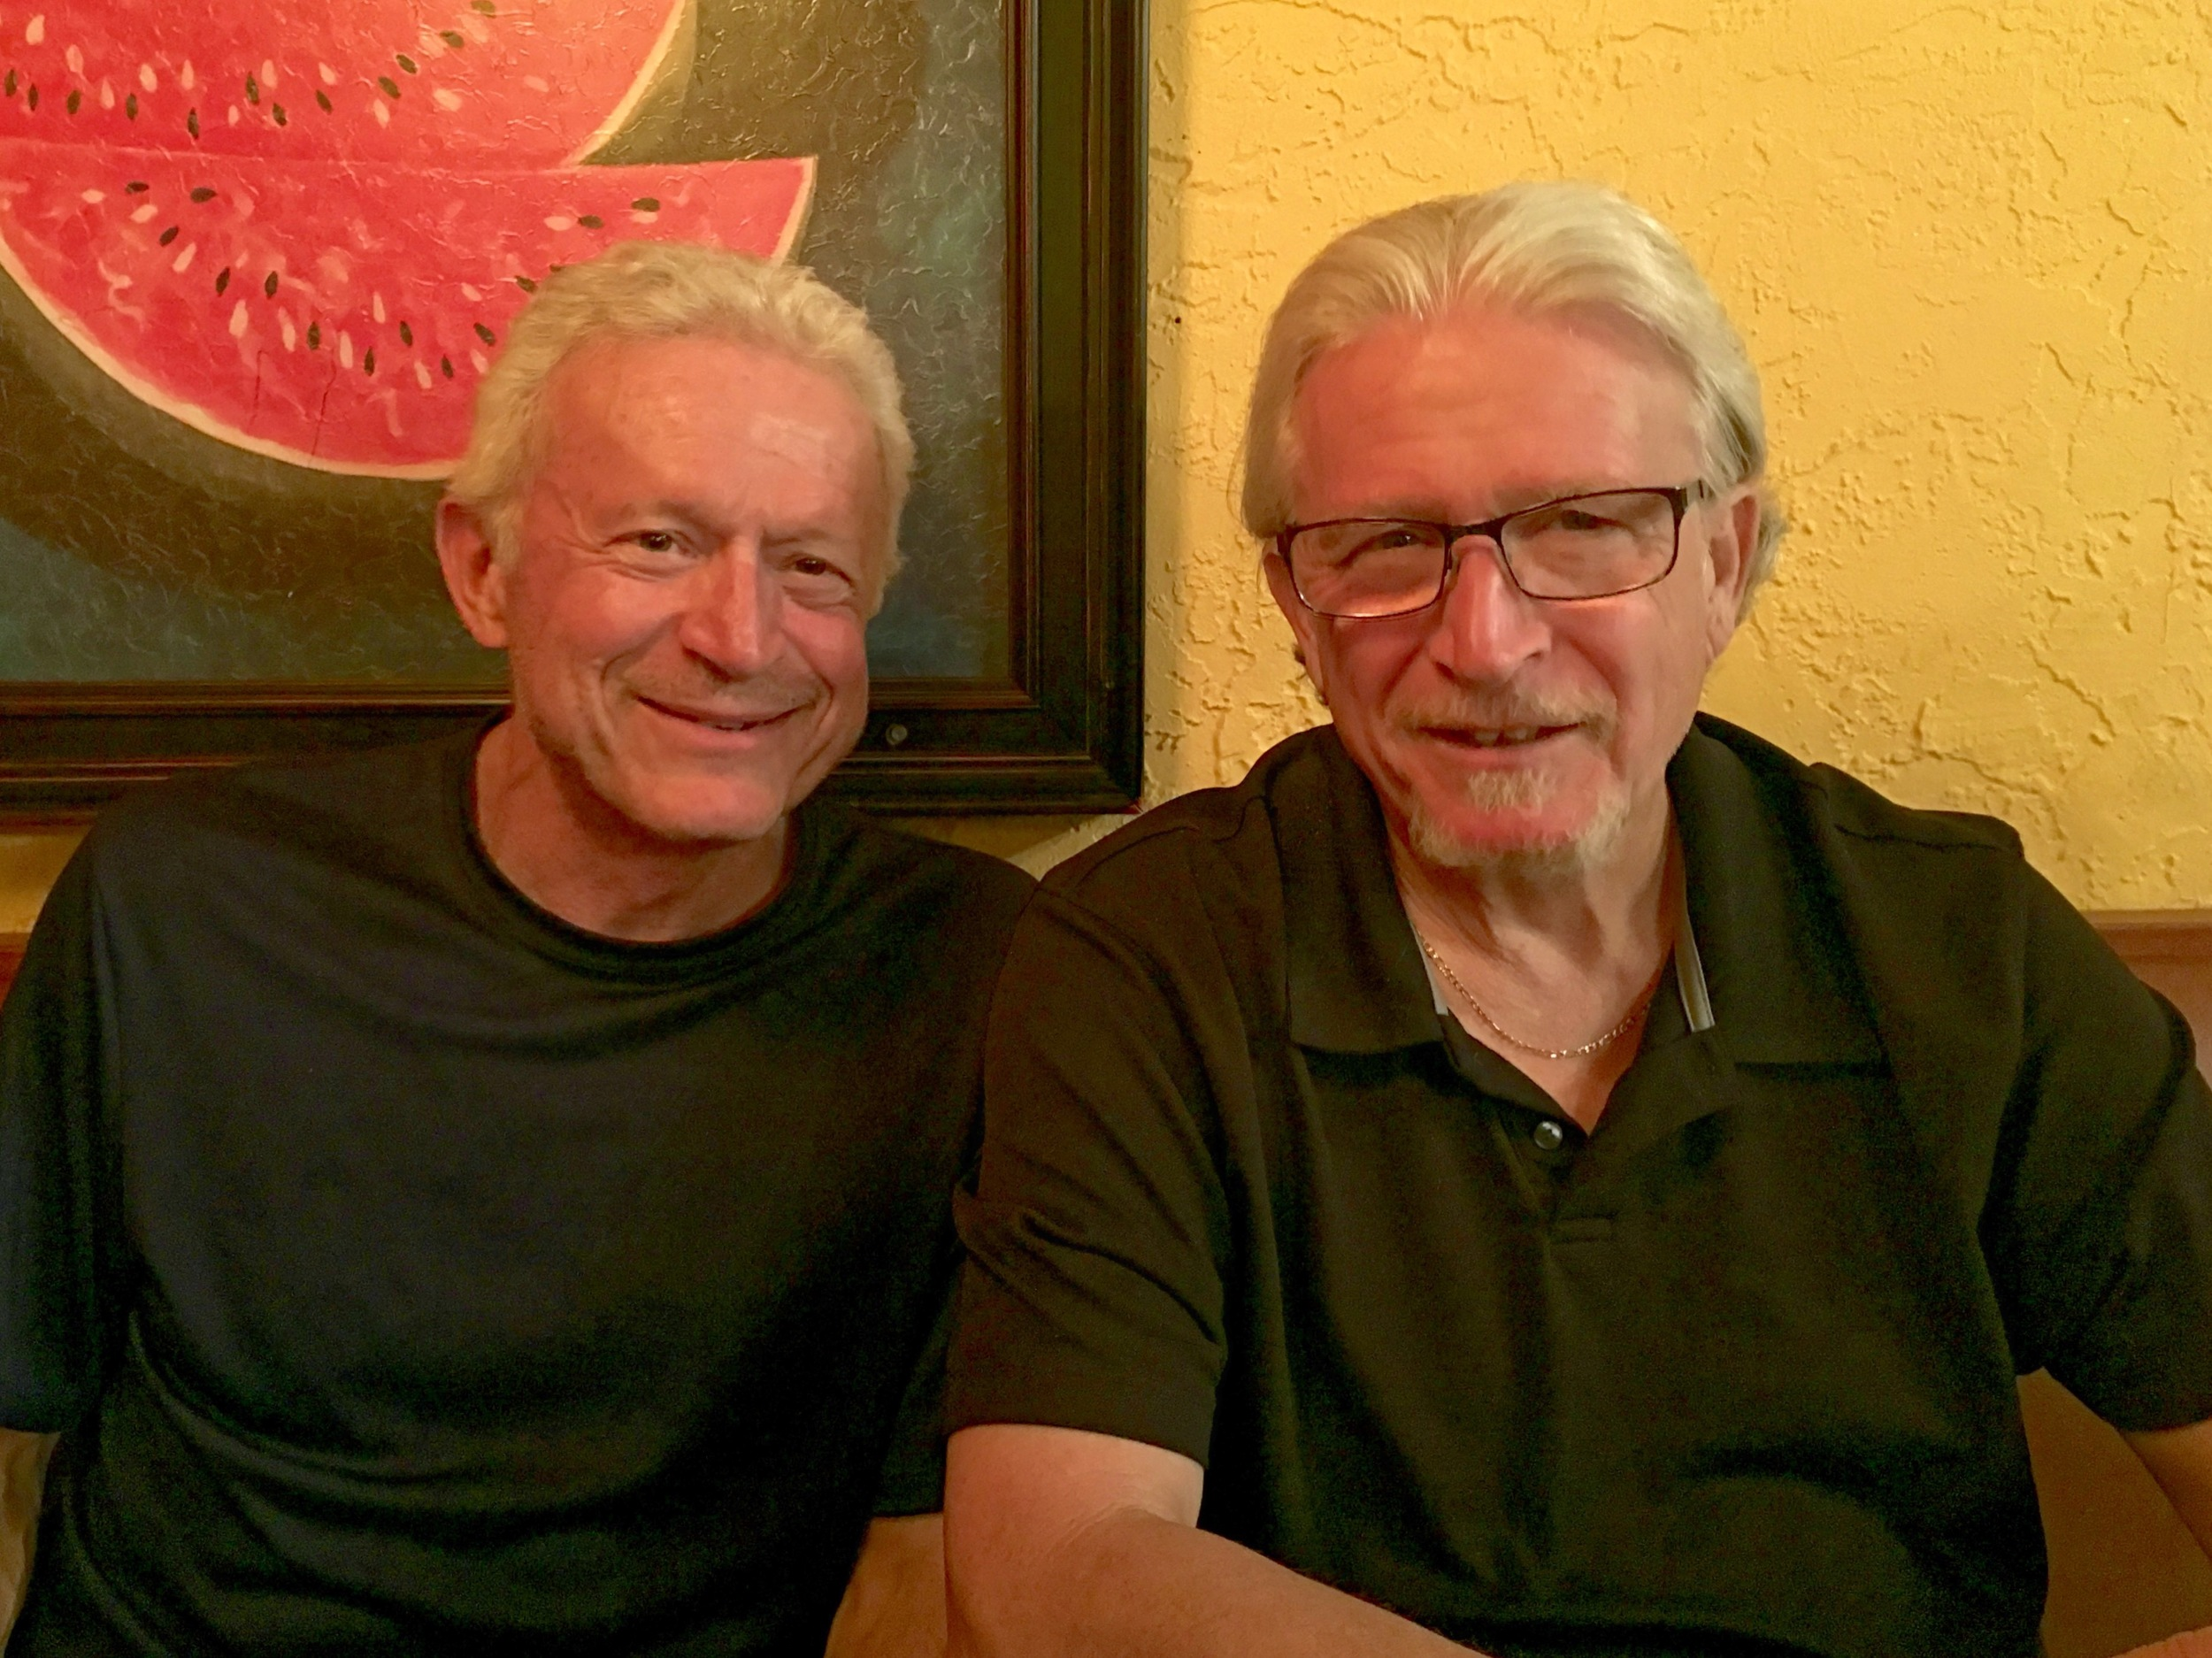 My brother Chris and I at dinner together.